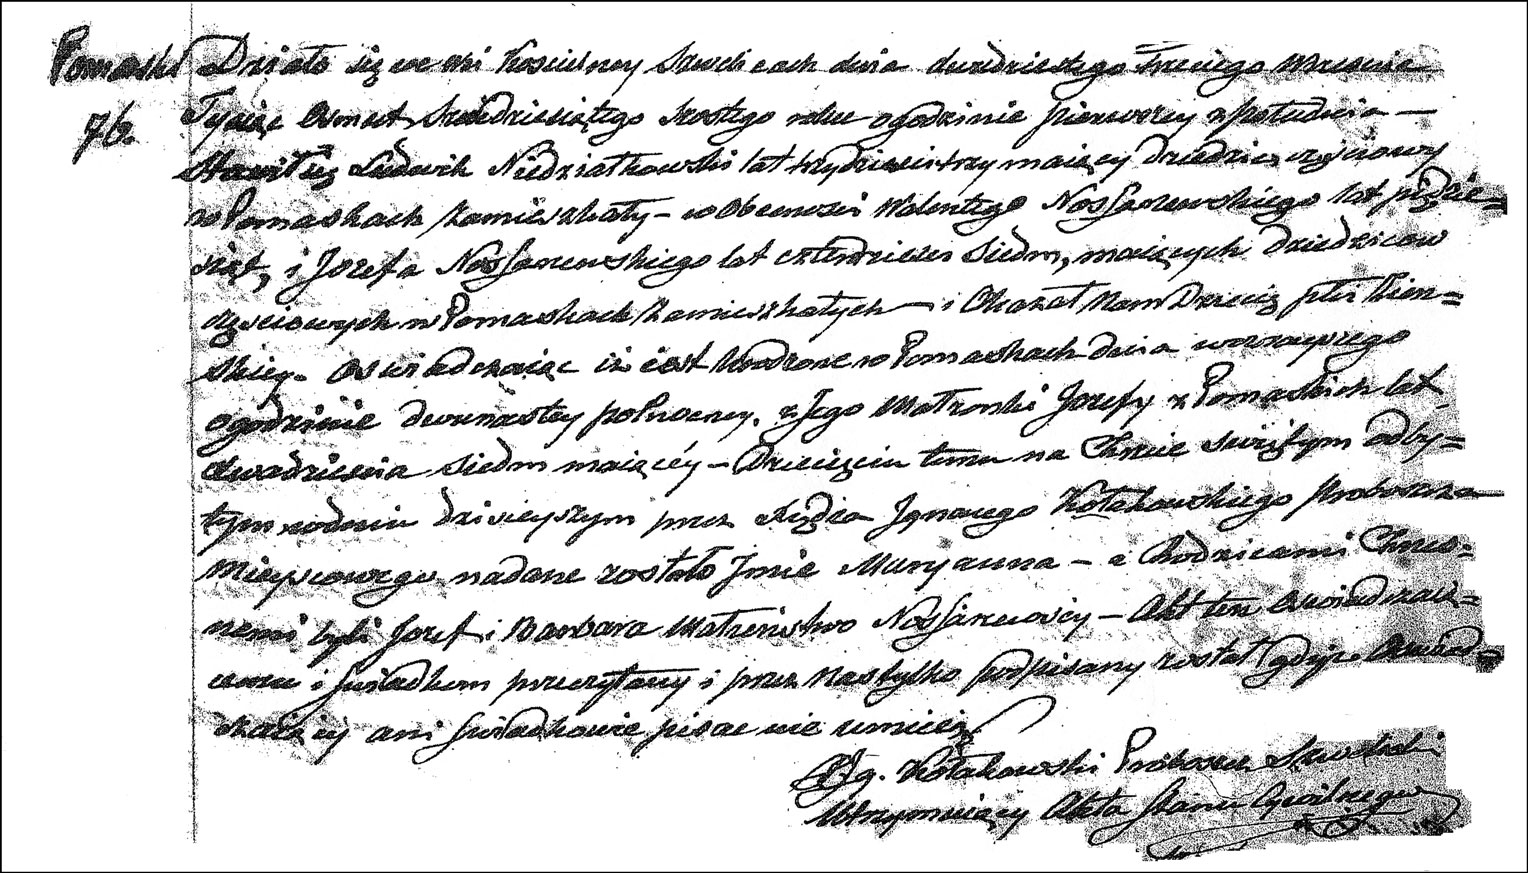 The Birth and Baptismal Record of Maryanna Niedzialkowska - 1866